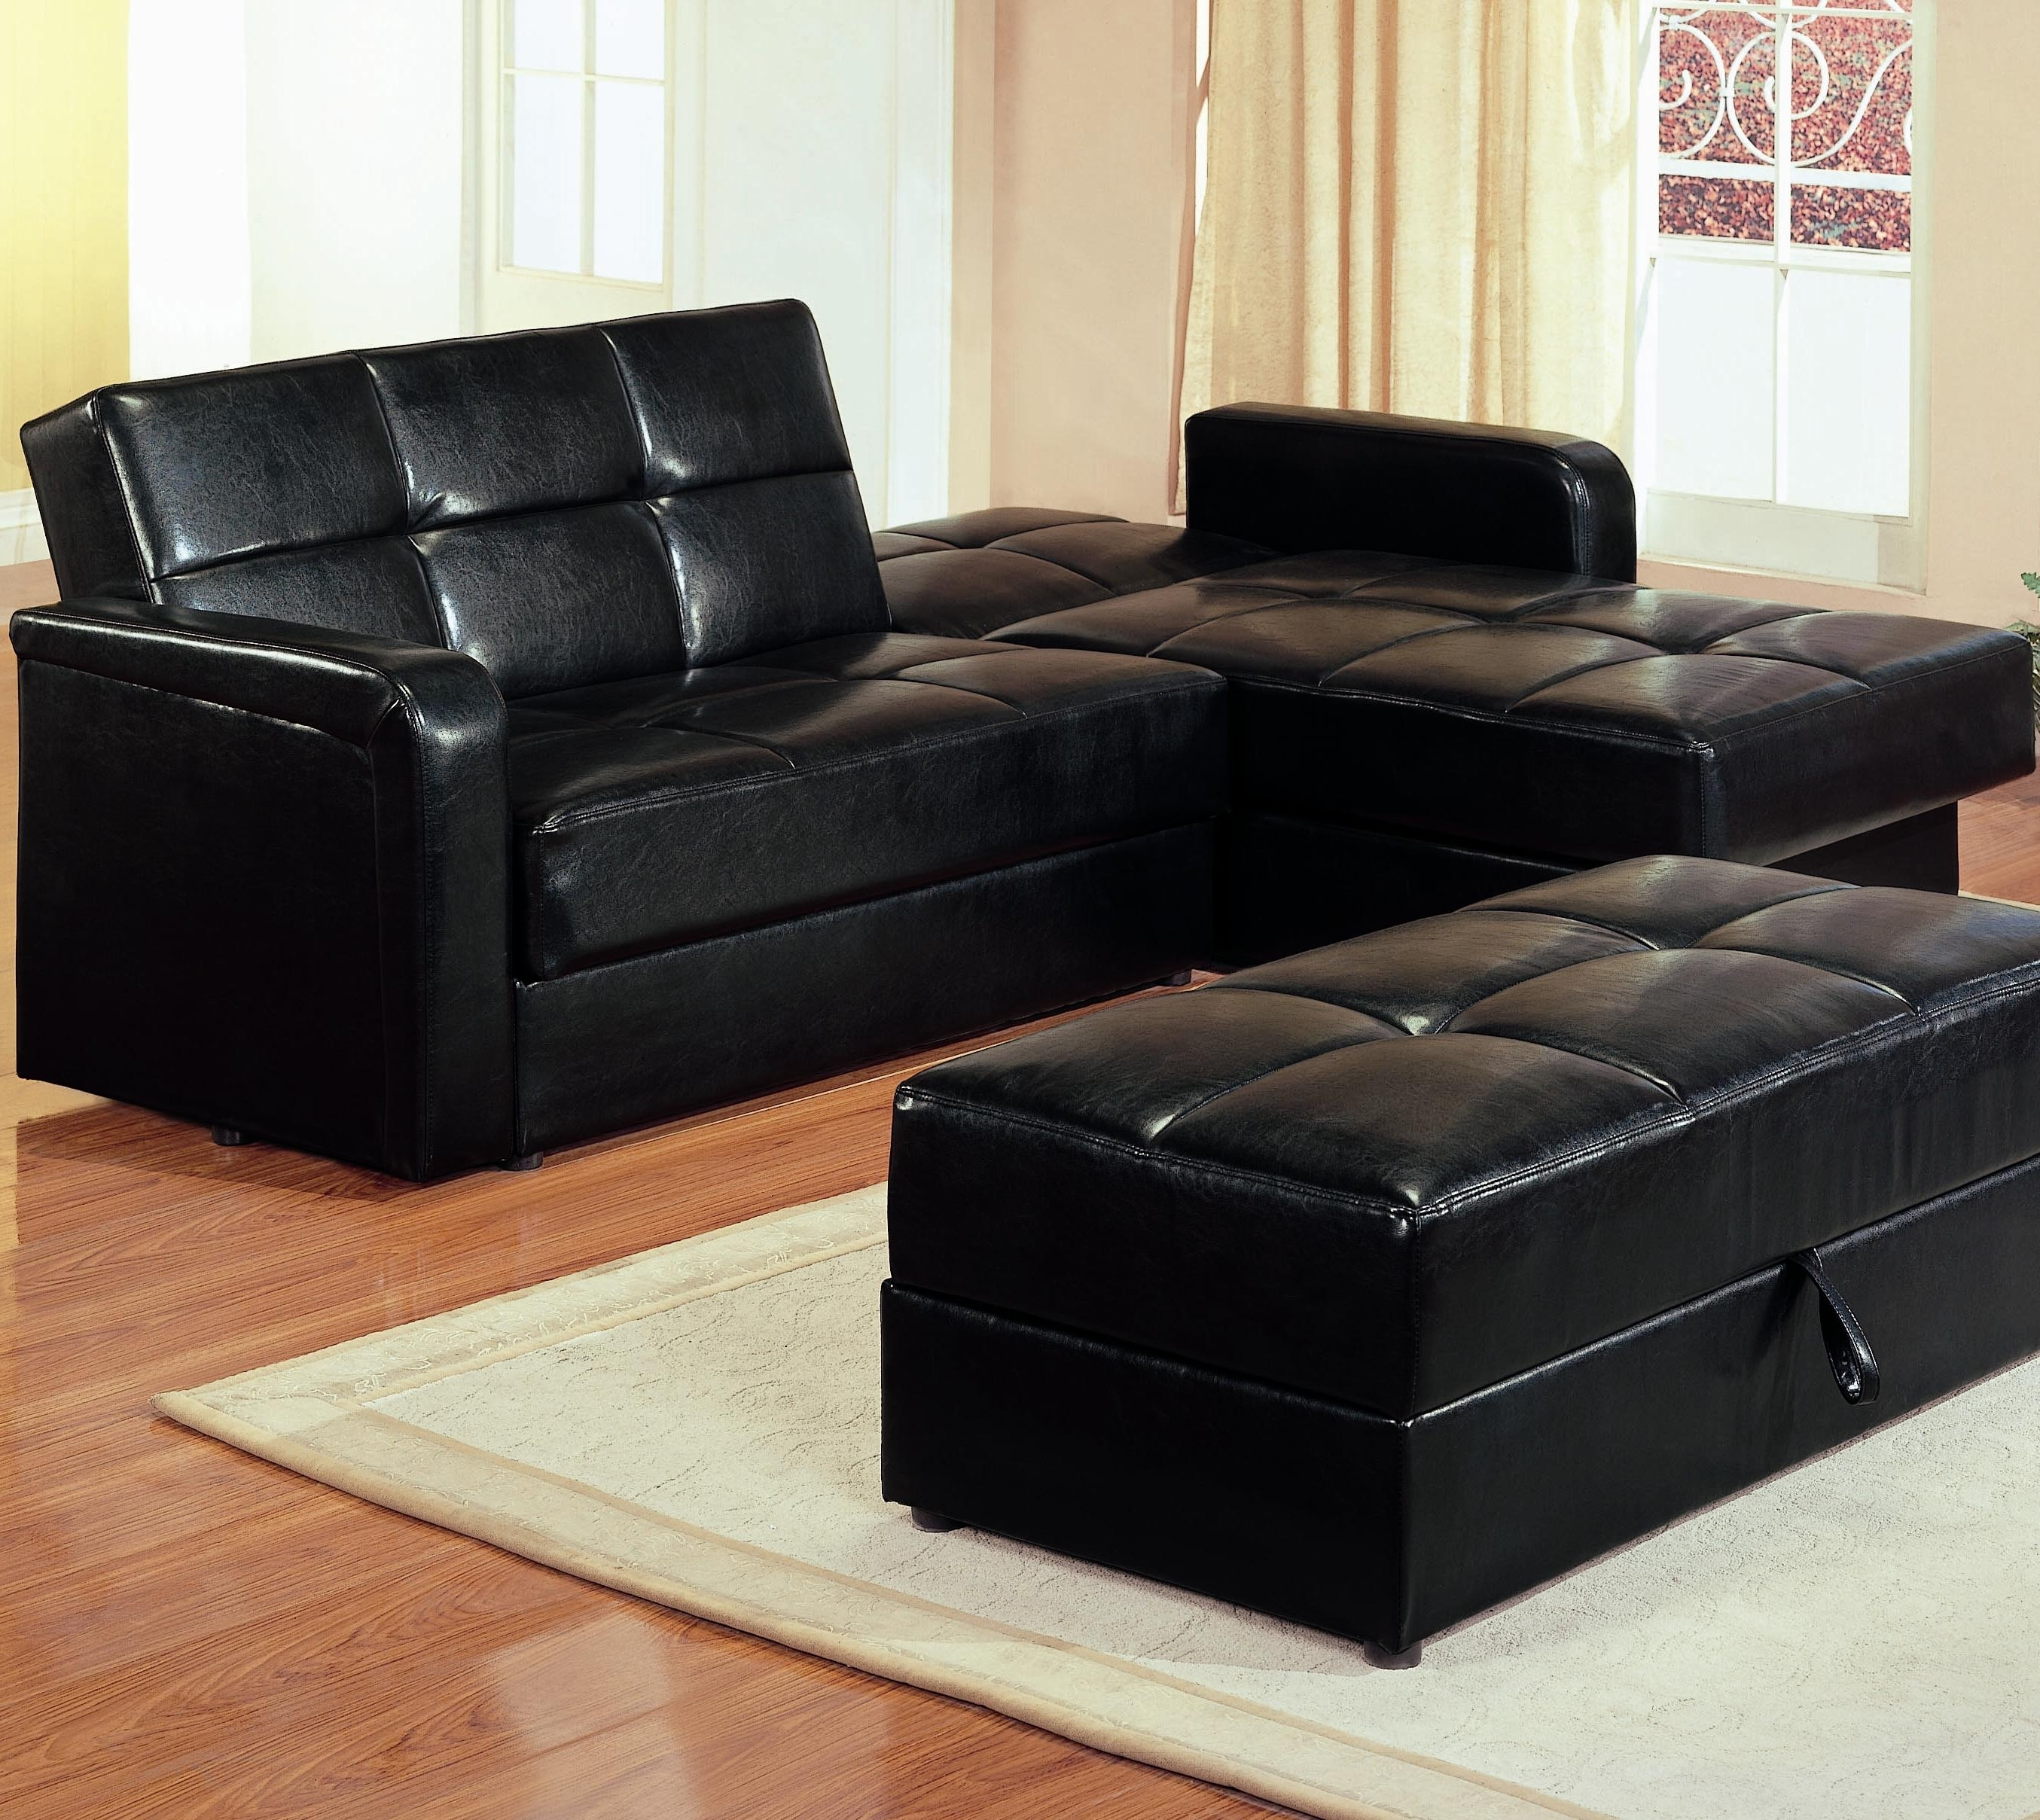 Ikea Sleeper Sectional Couch With Storage And Bed Click Clack Sofa Intended For Most Up To Date Leather Sofas With Storage (Gallery 14 of 20)